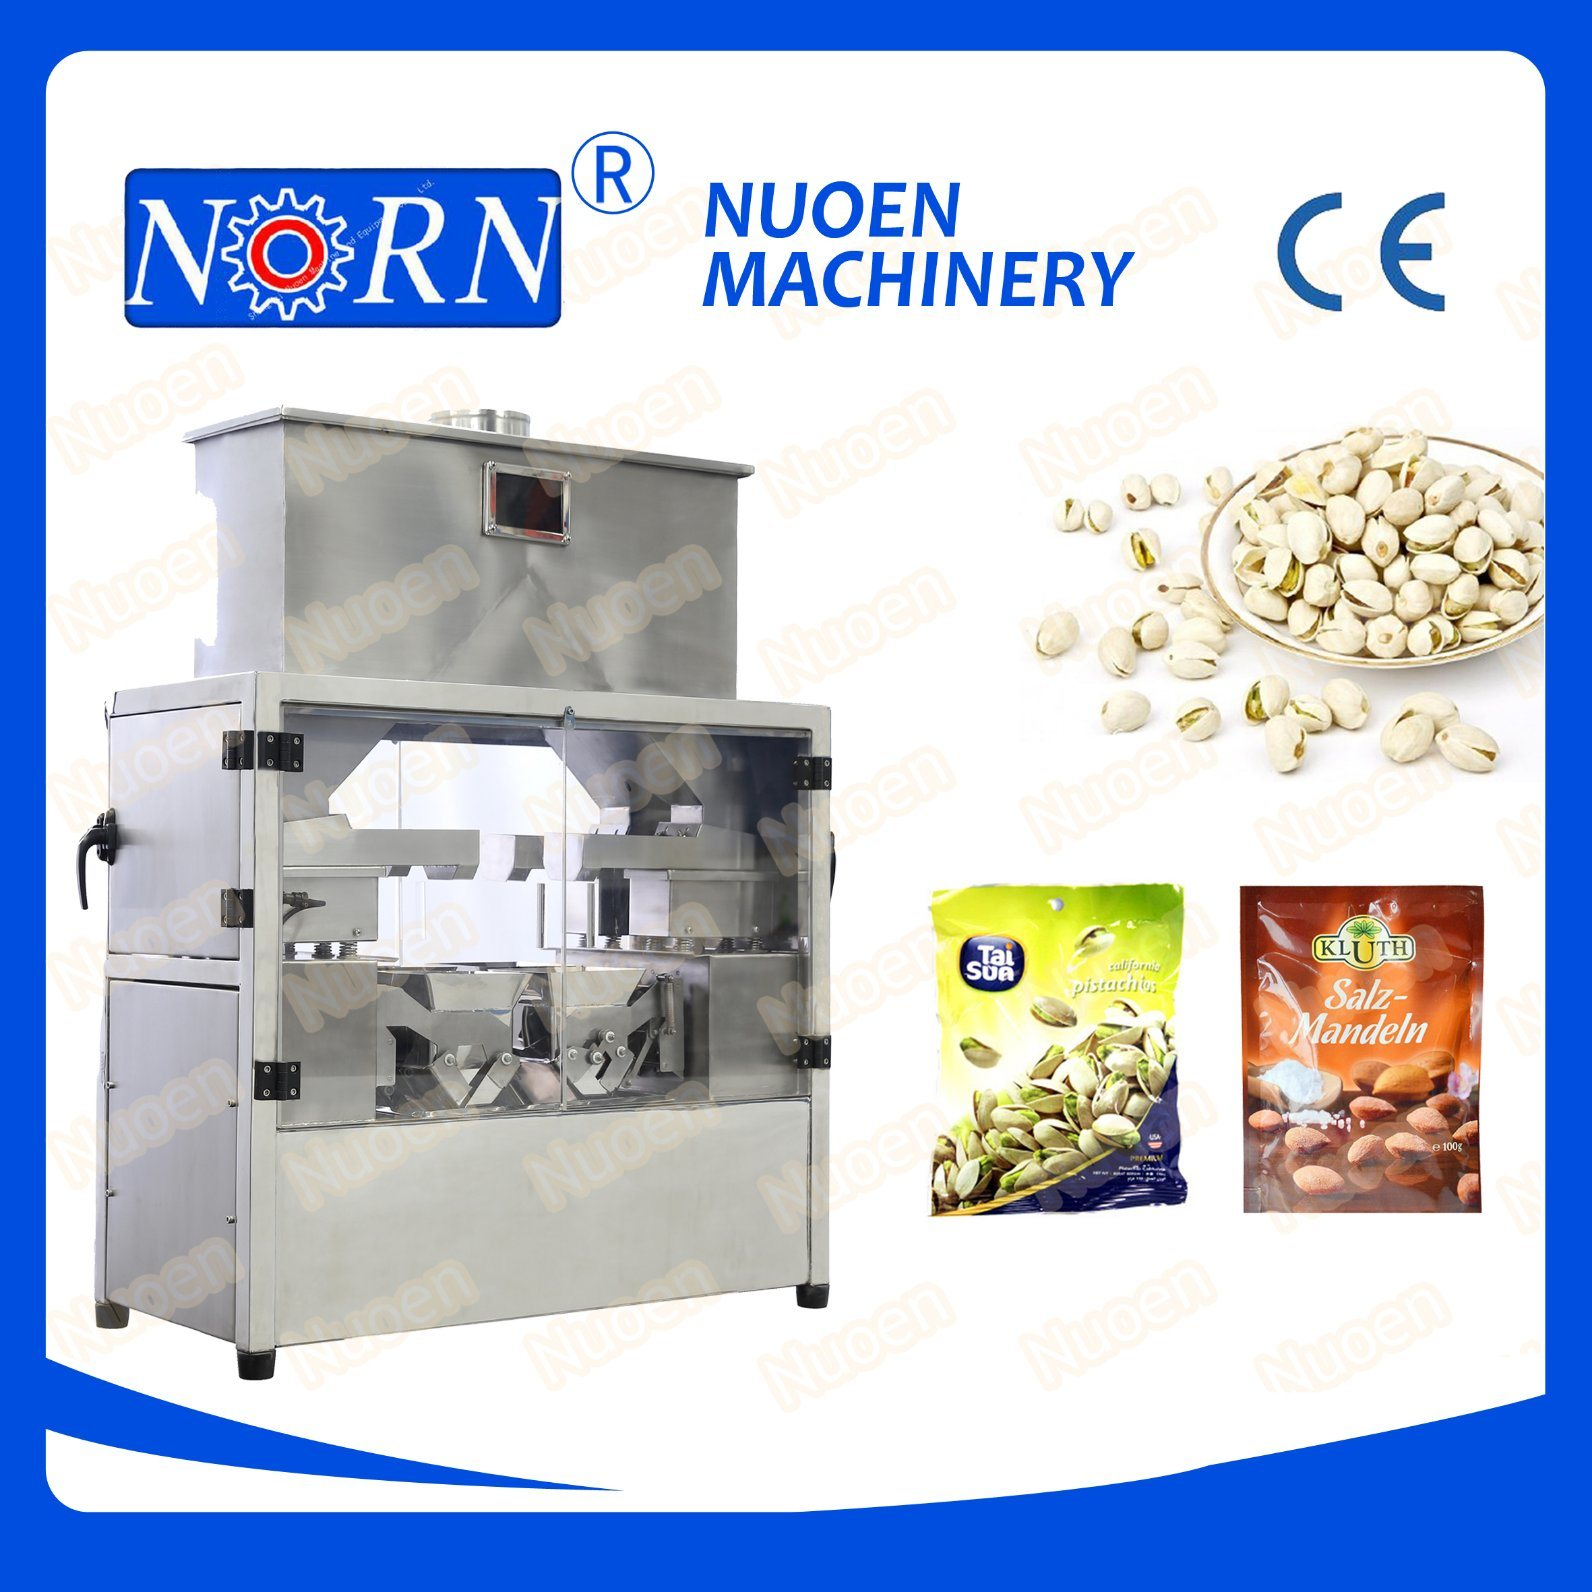 Nuoen Four Stations Automatic Weighing Machine for Particles/Powder